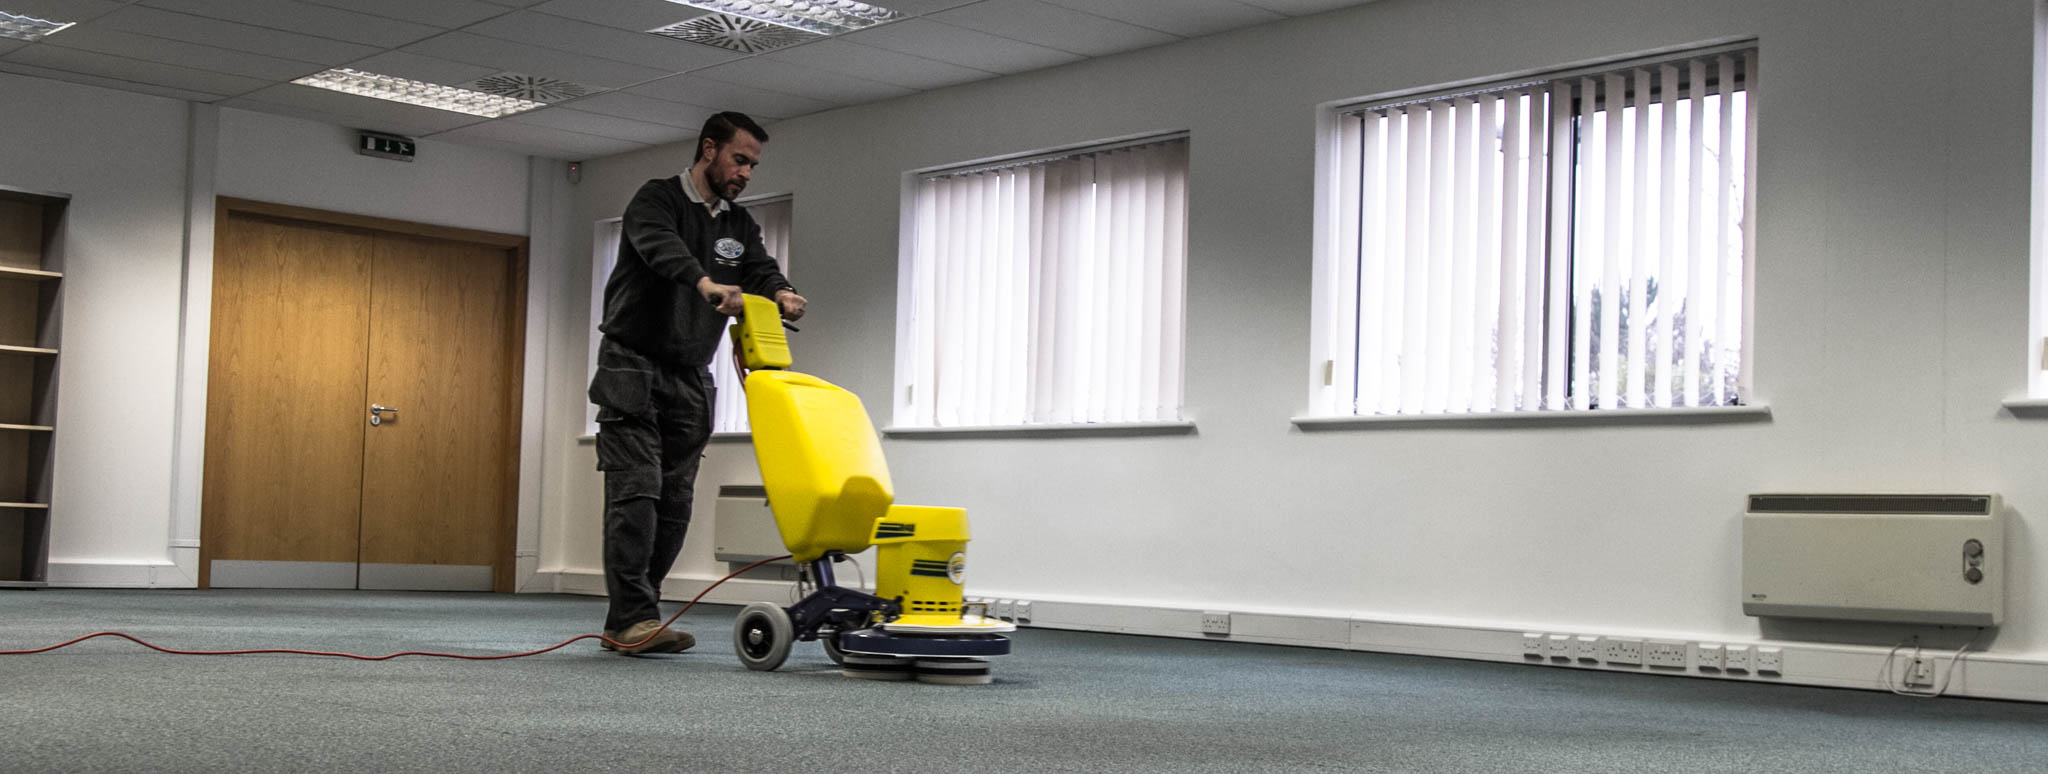 Commercial Carpet Cleaning Bedfordshire Buckinghamshire